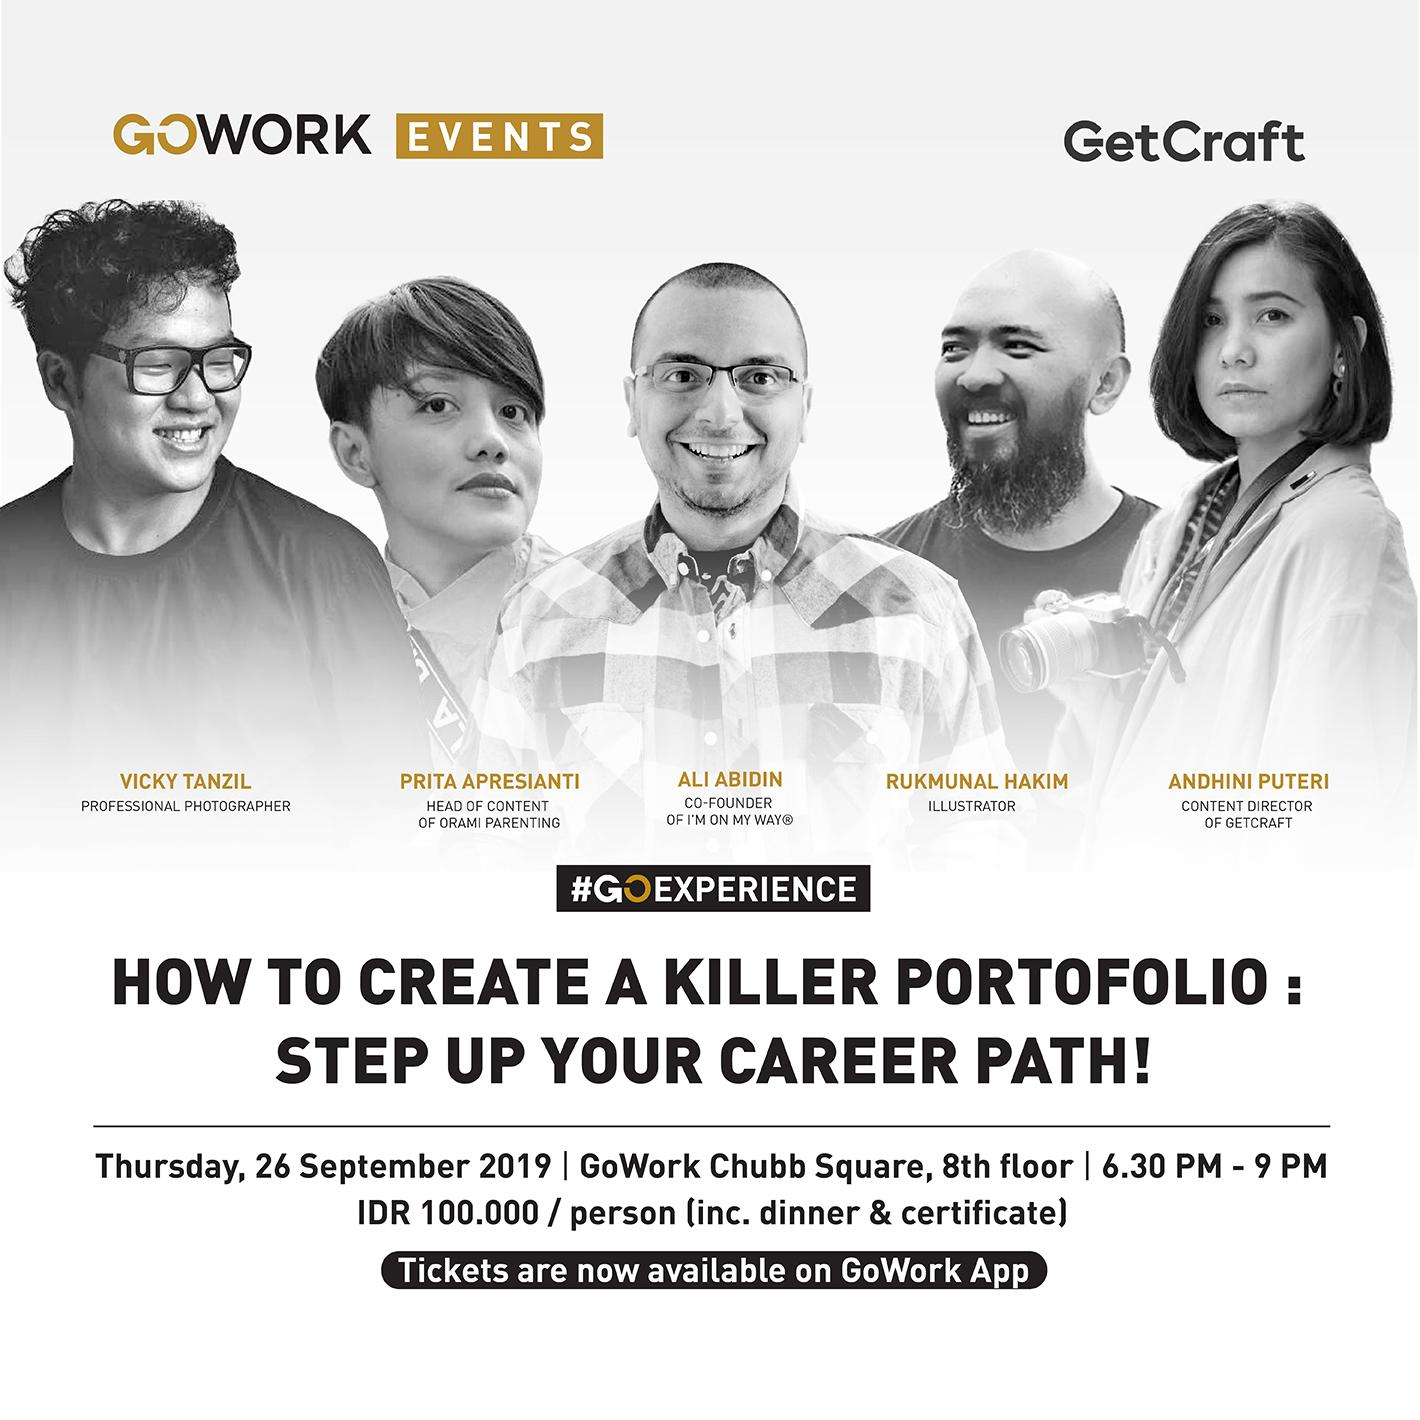 How to Create a Killer Portfolio : Step Up Your Career Path!